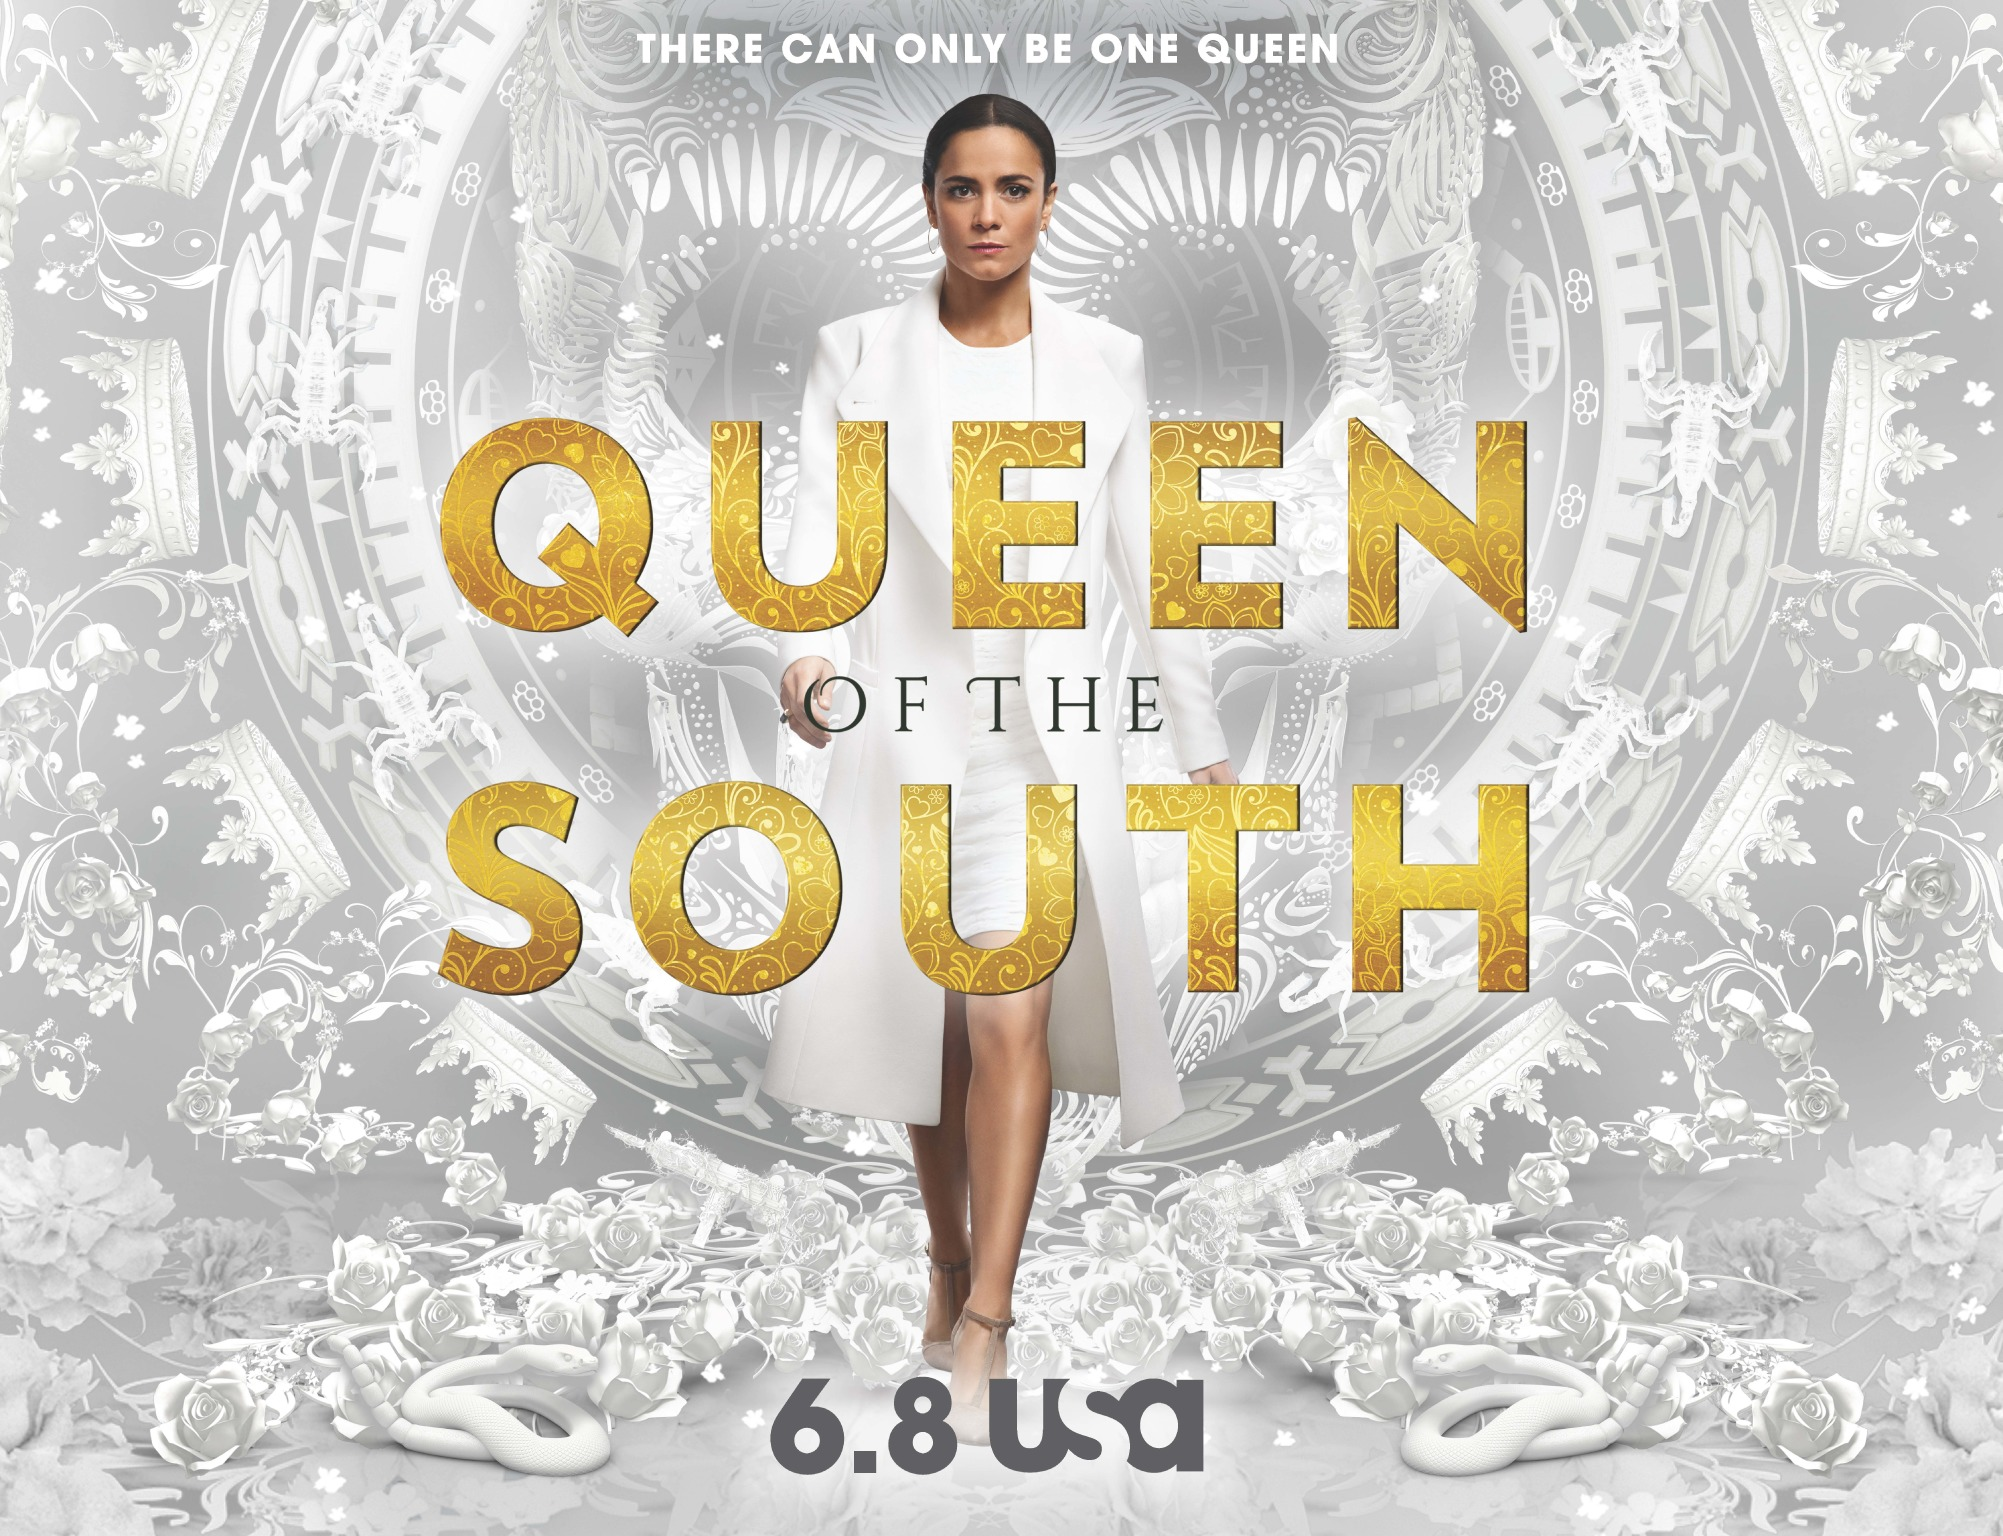 Free Queen of the South episodes here - yoursassyself.com